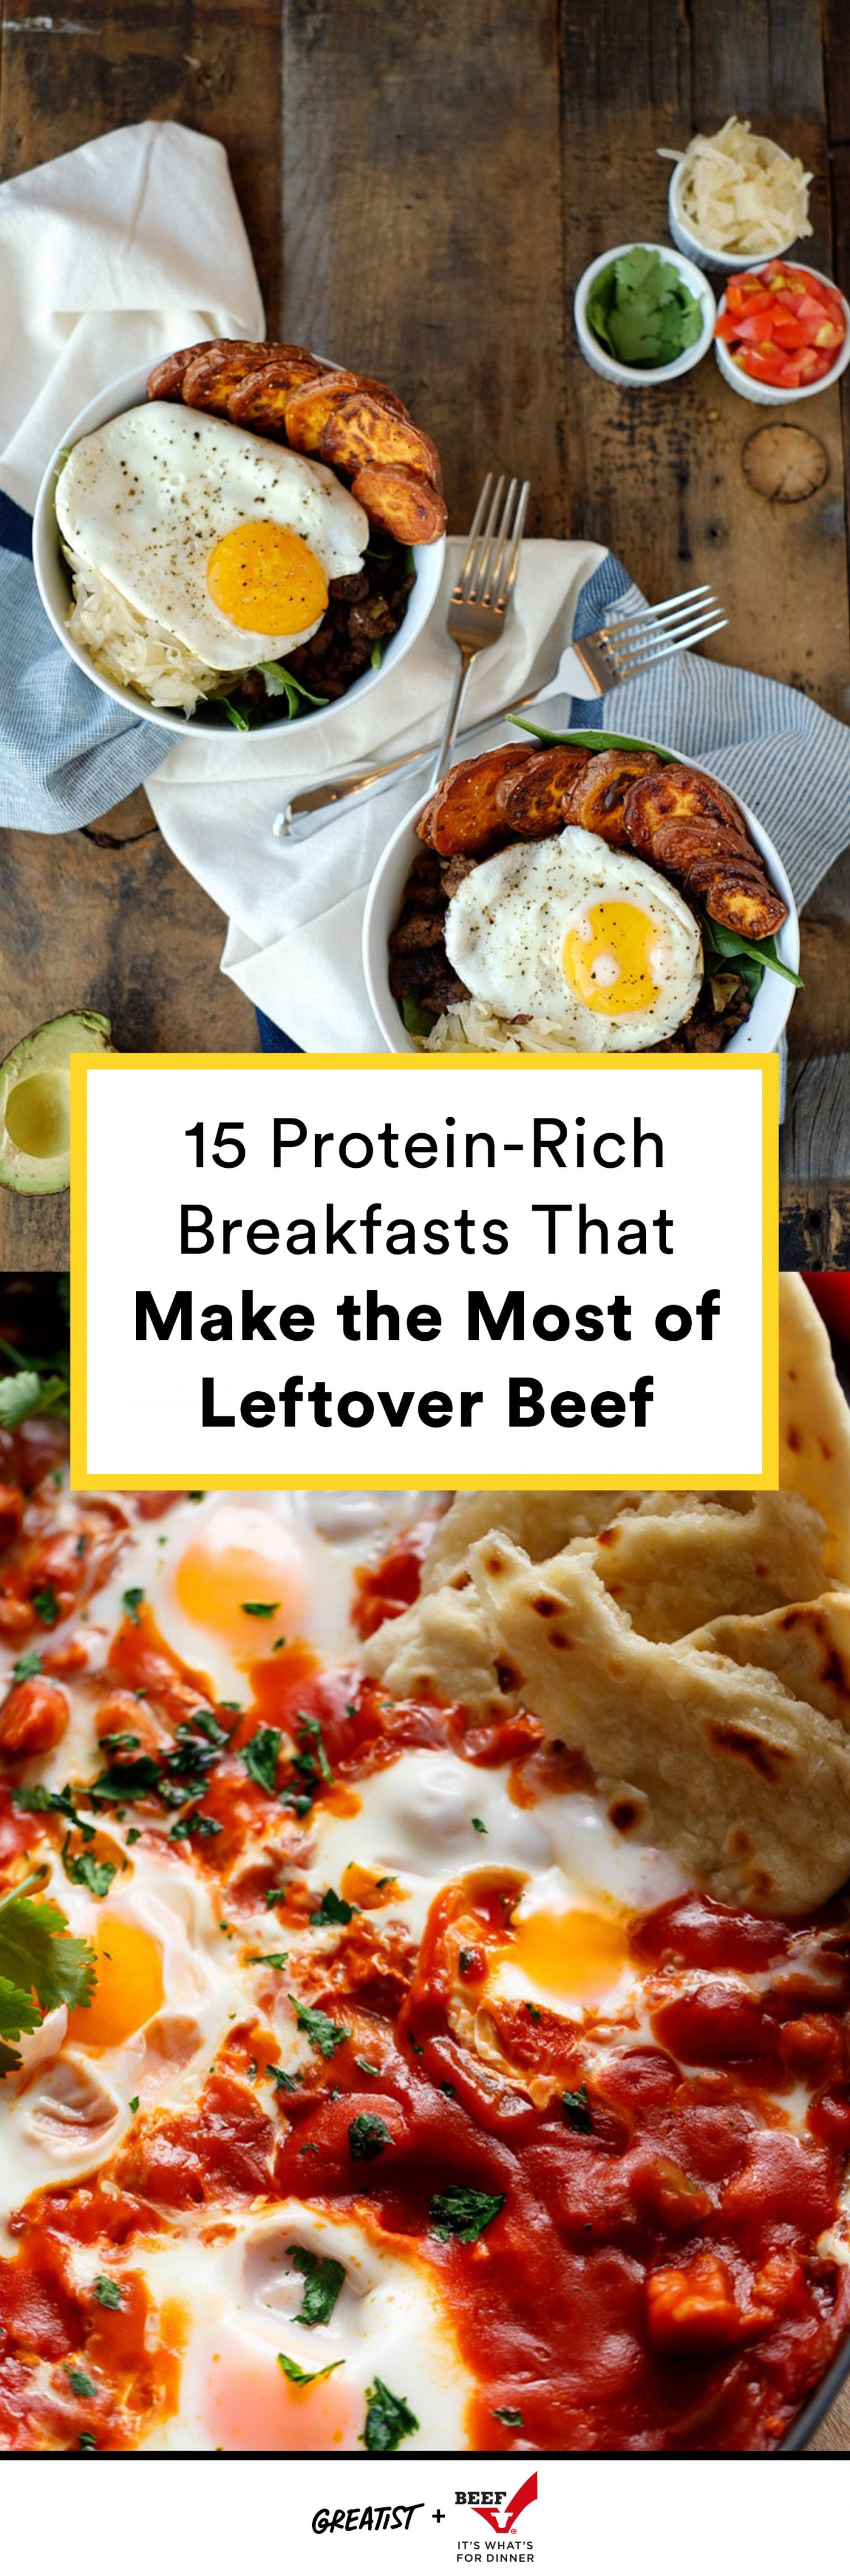 High-Protein Breakfasts Made With Leftover Beef